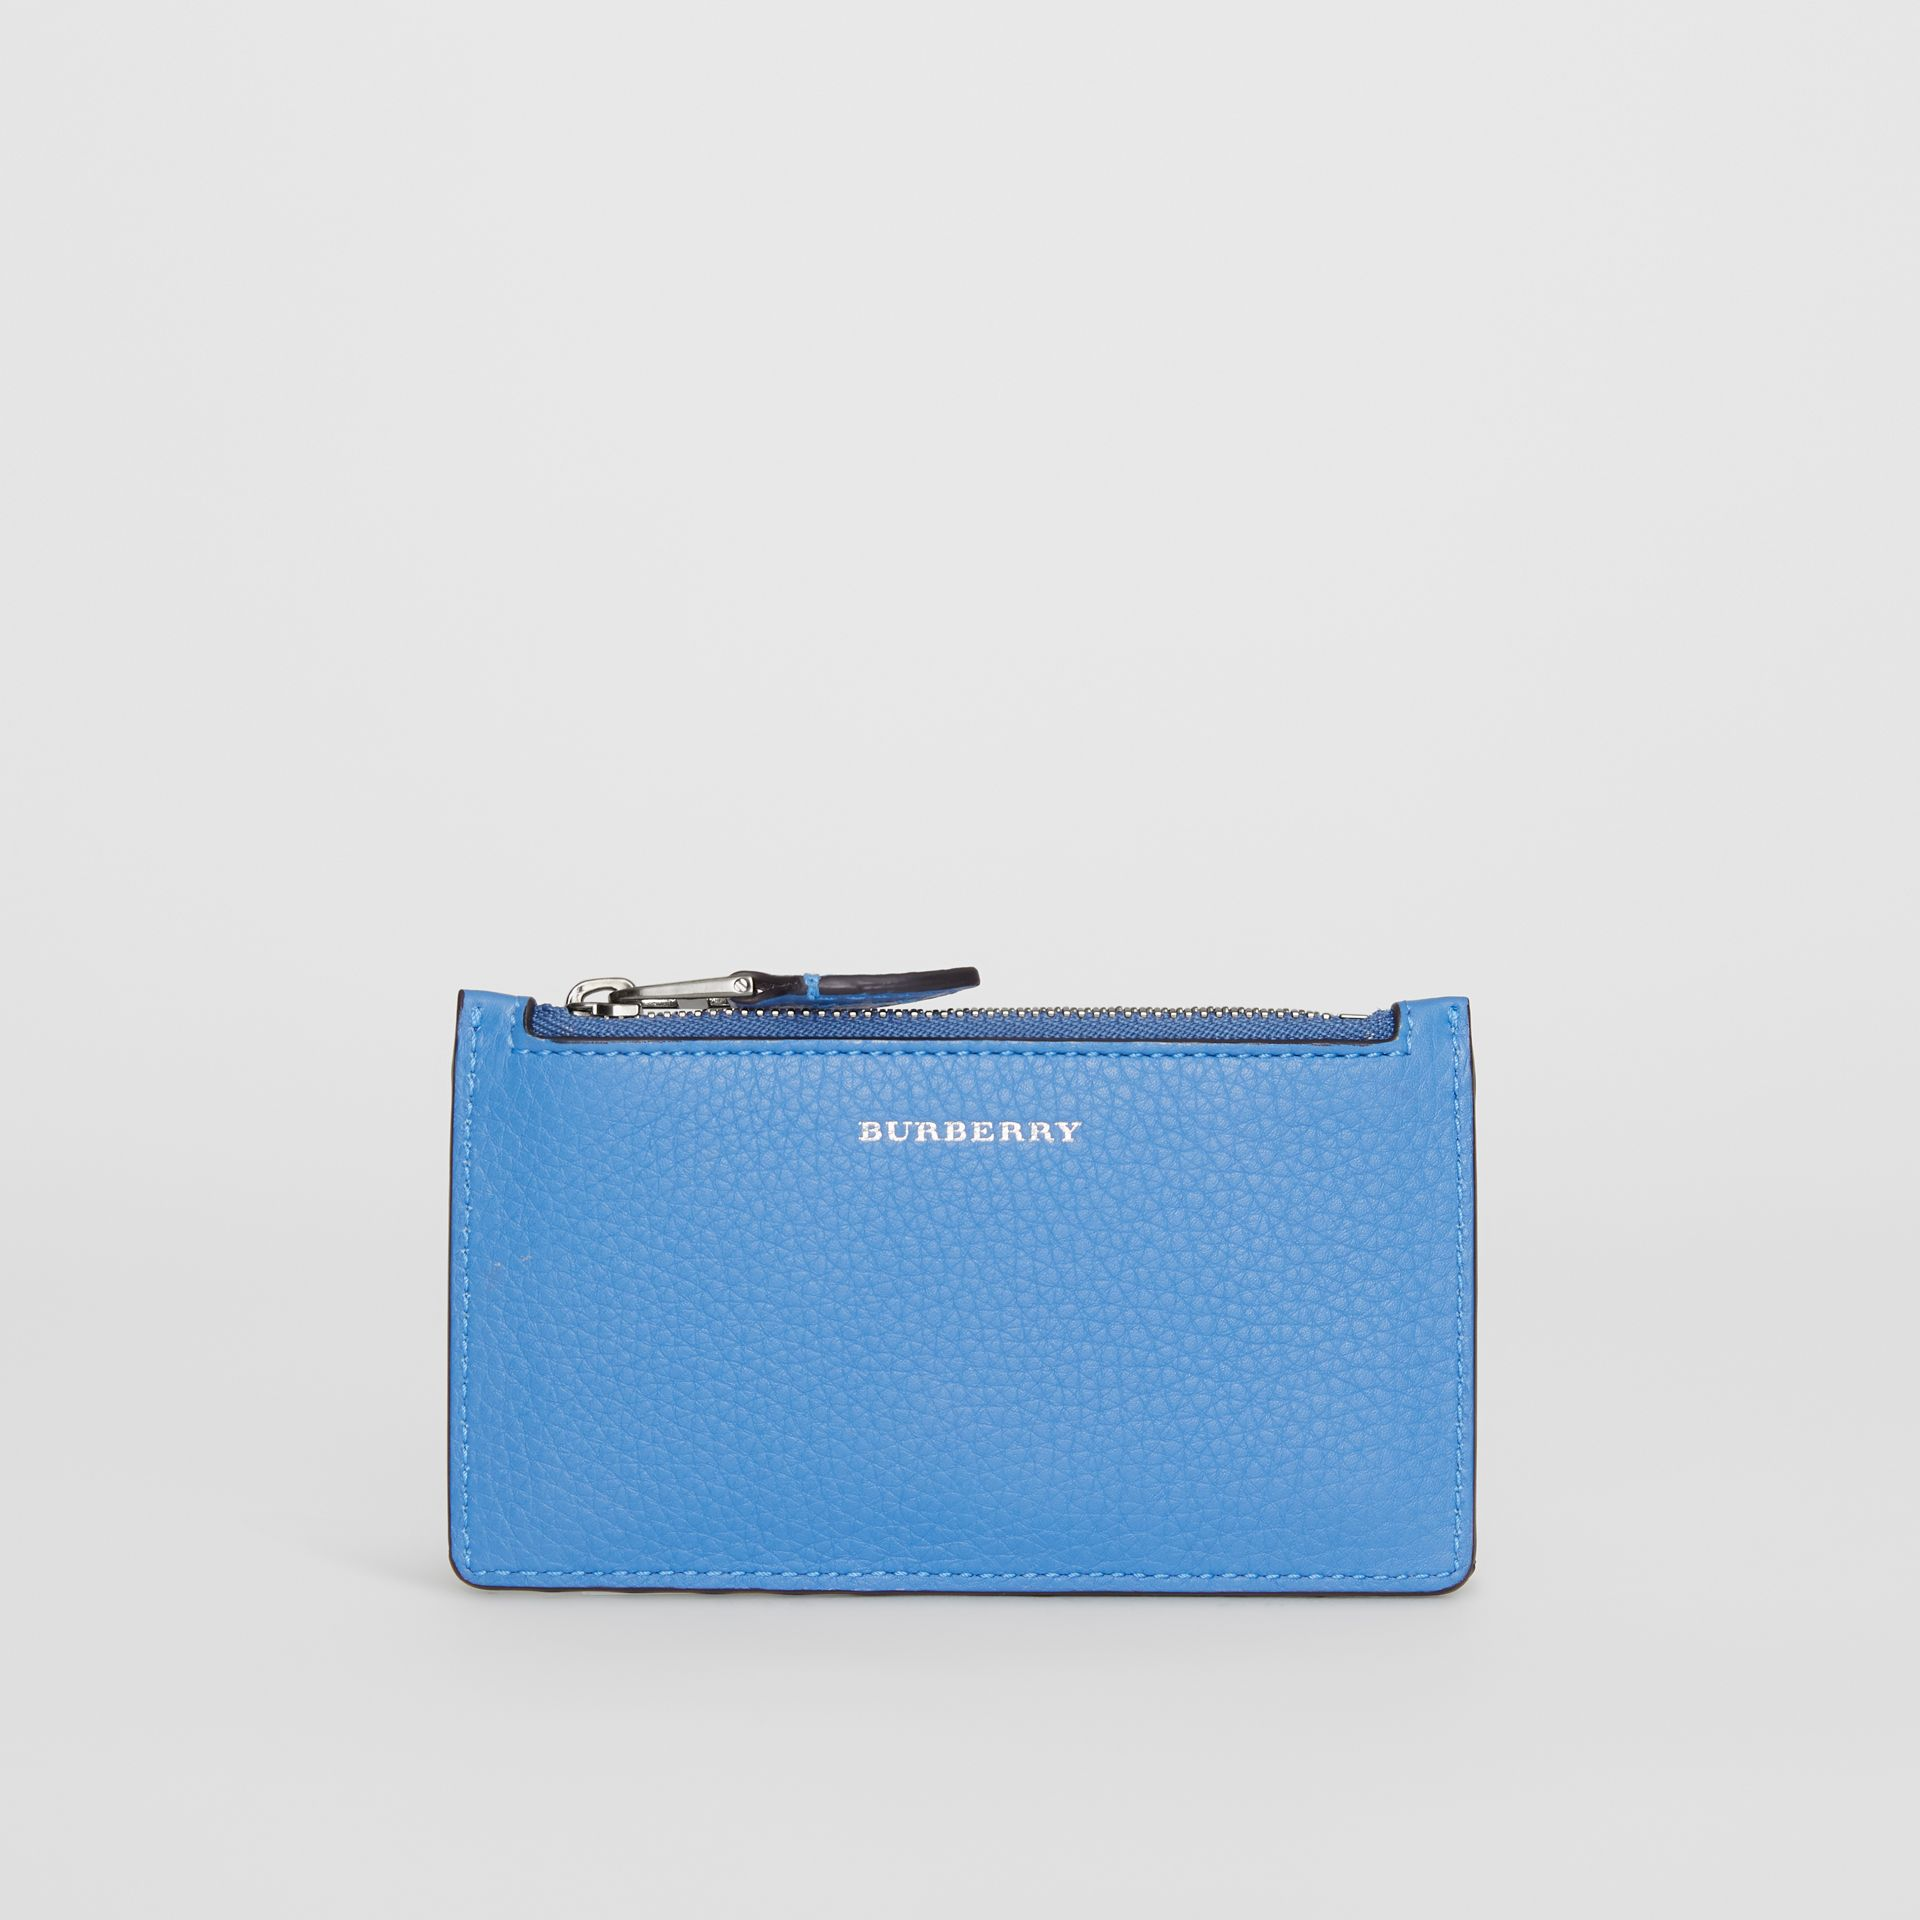 Two-tone Leather Card Case in Hydrangea Blue - Women | Burberry Australia - gallery image 2